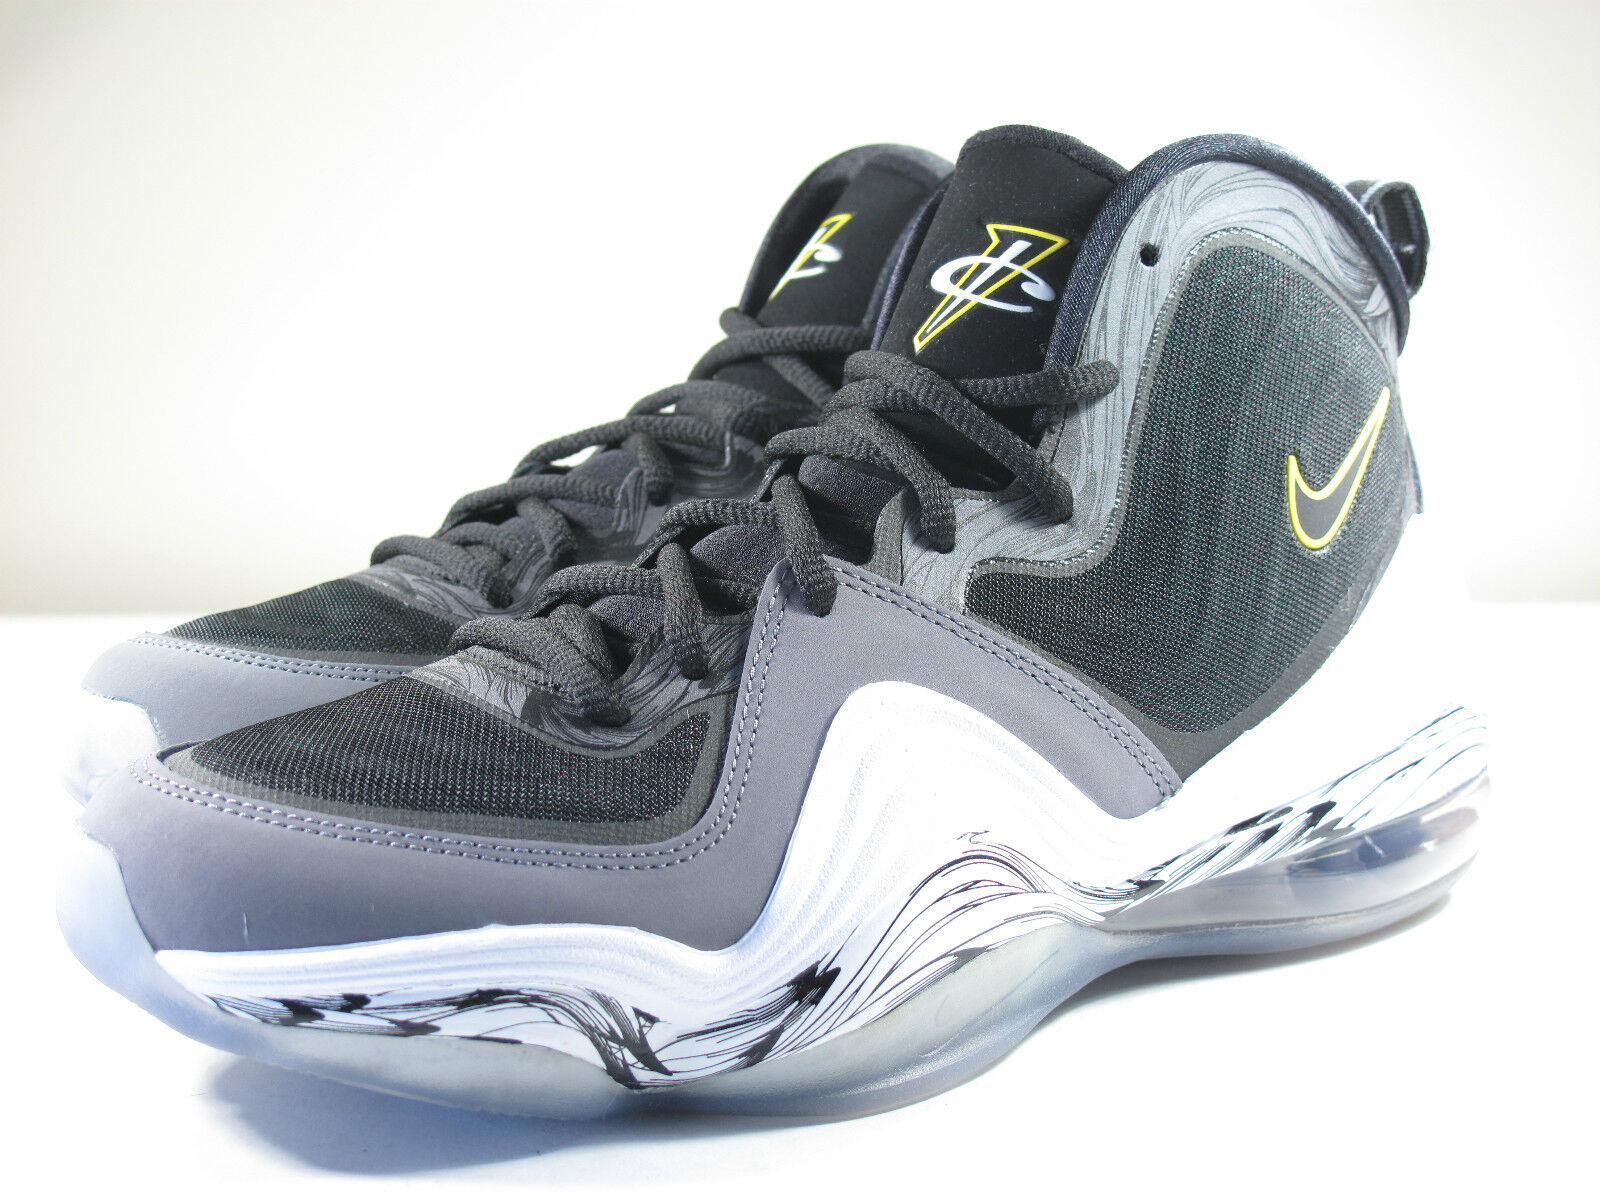 DS NIKE 2012 AIR PENNY V COOL GREY 8 MAX 180 FORCE ZOOM 95 KIDD RETRO OLYMPIC